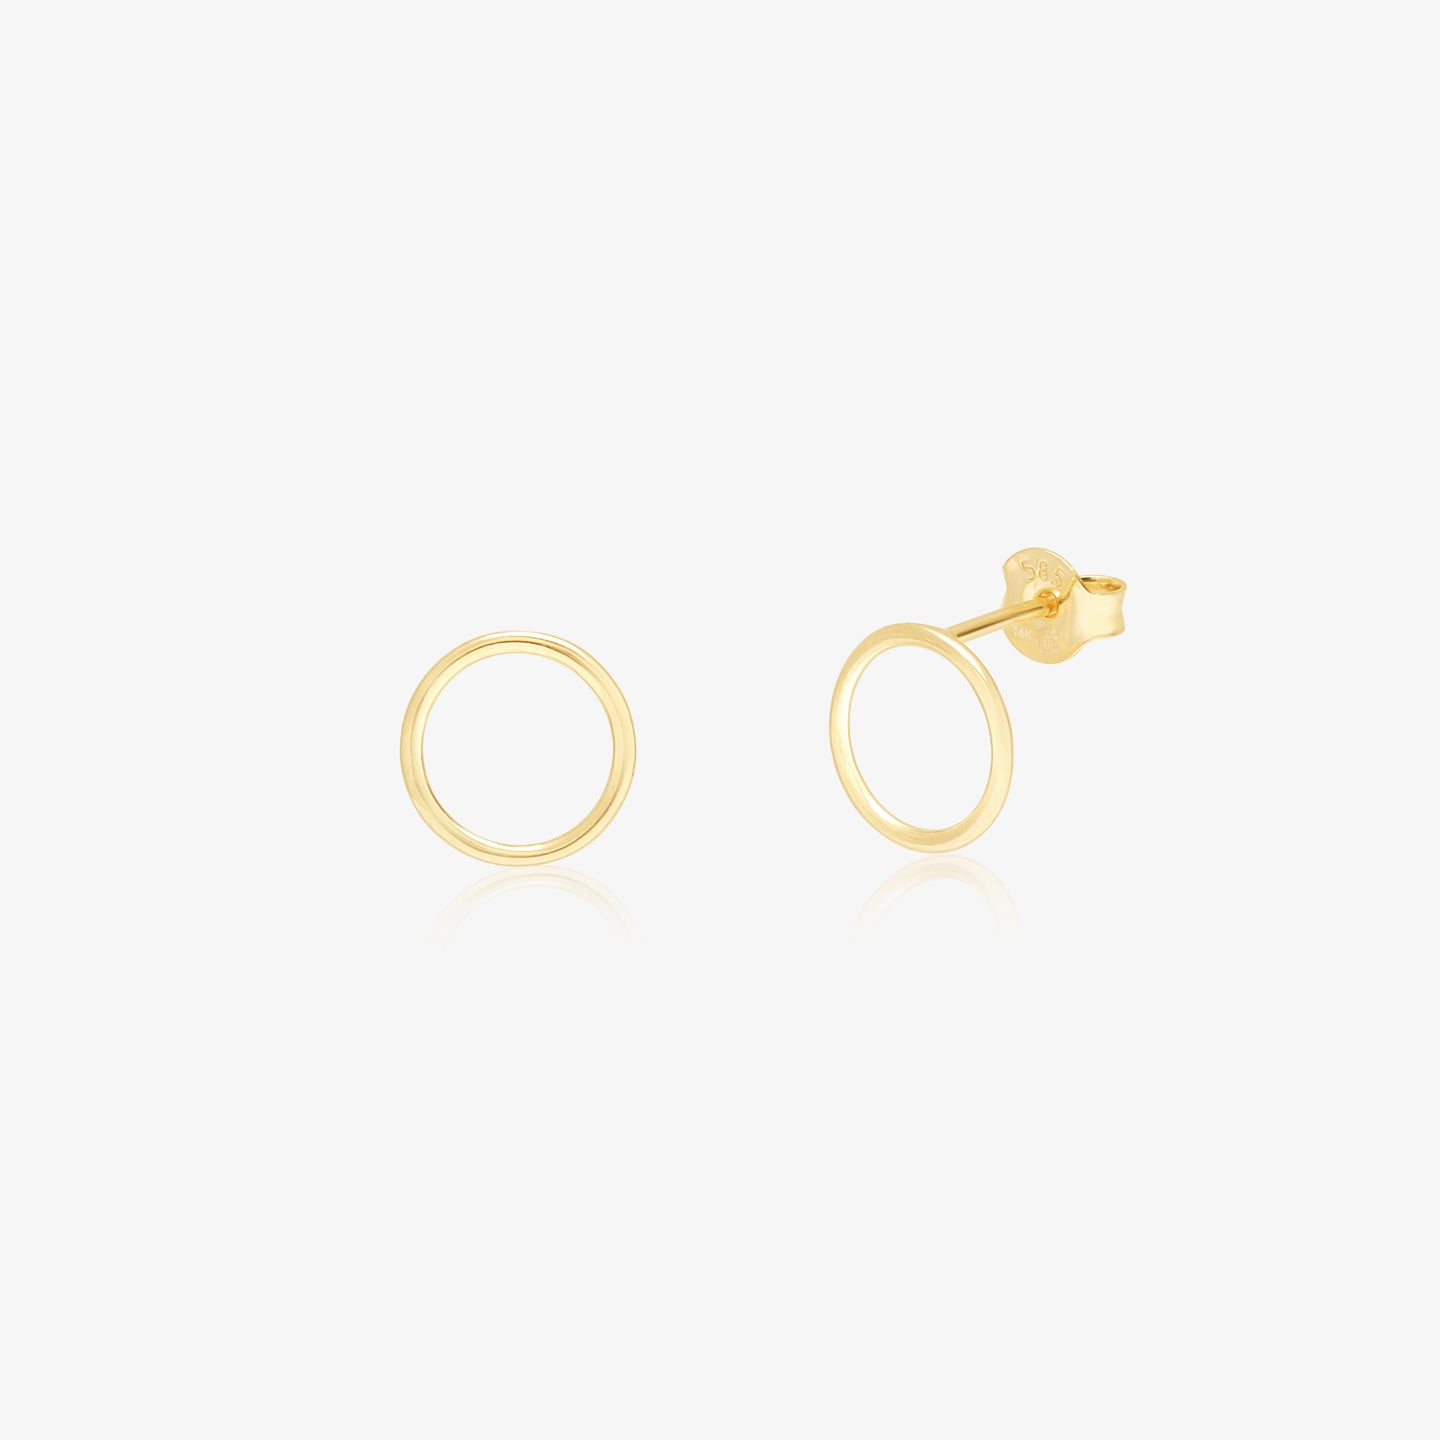 Gold Circle Studs Earrings - estellacollection